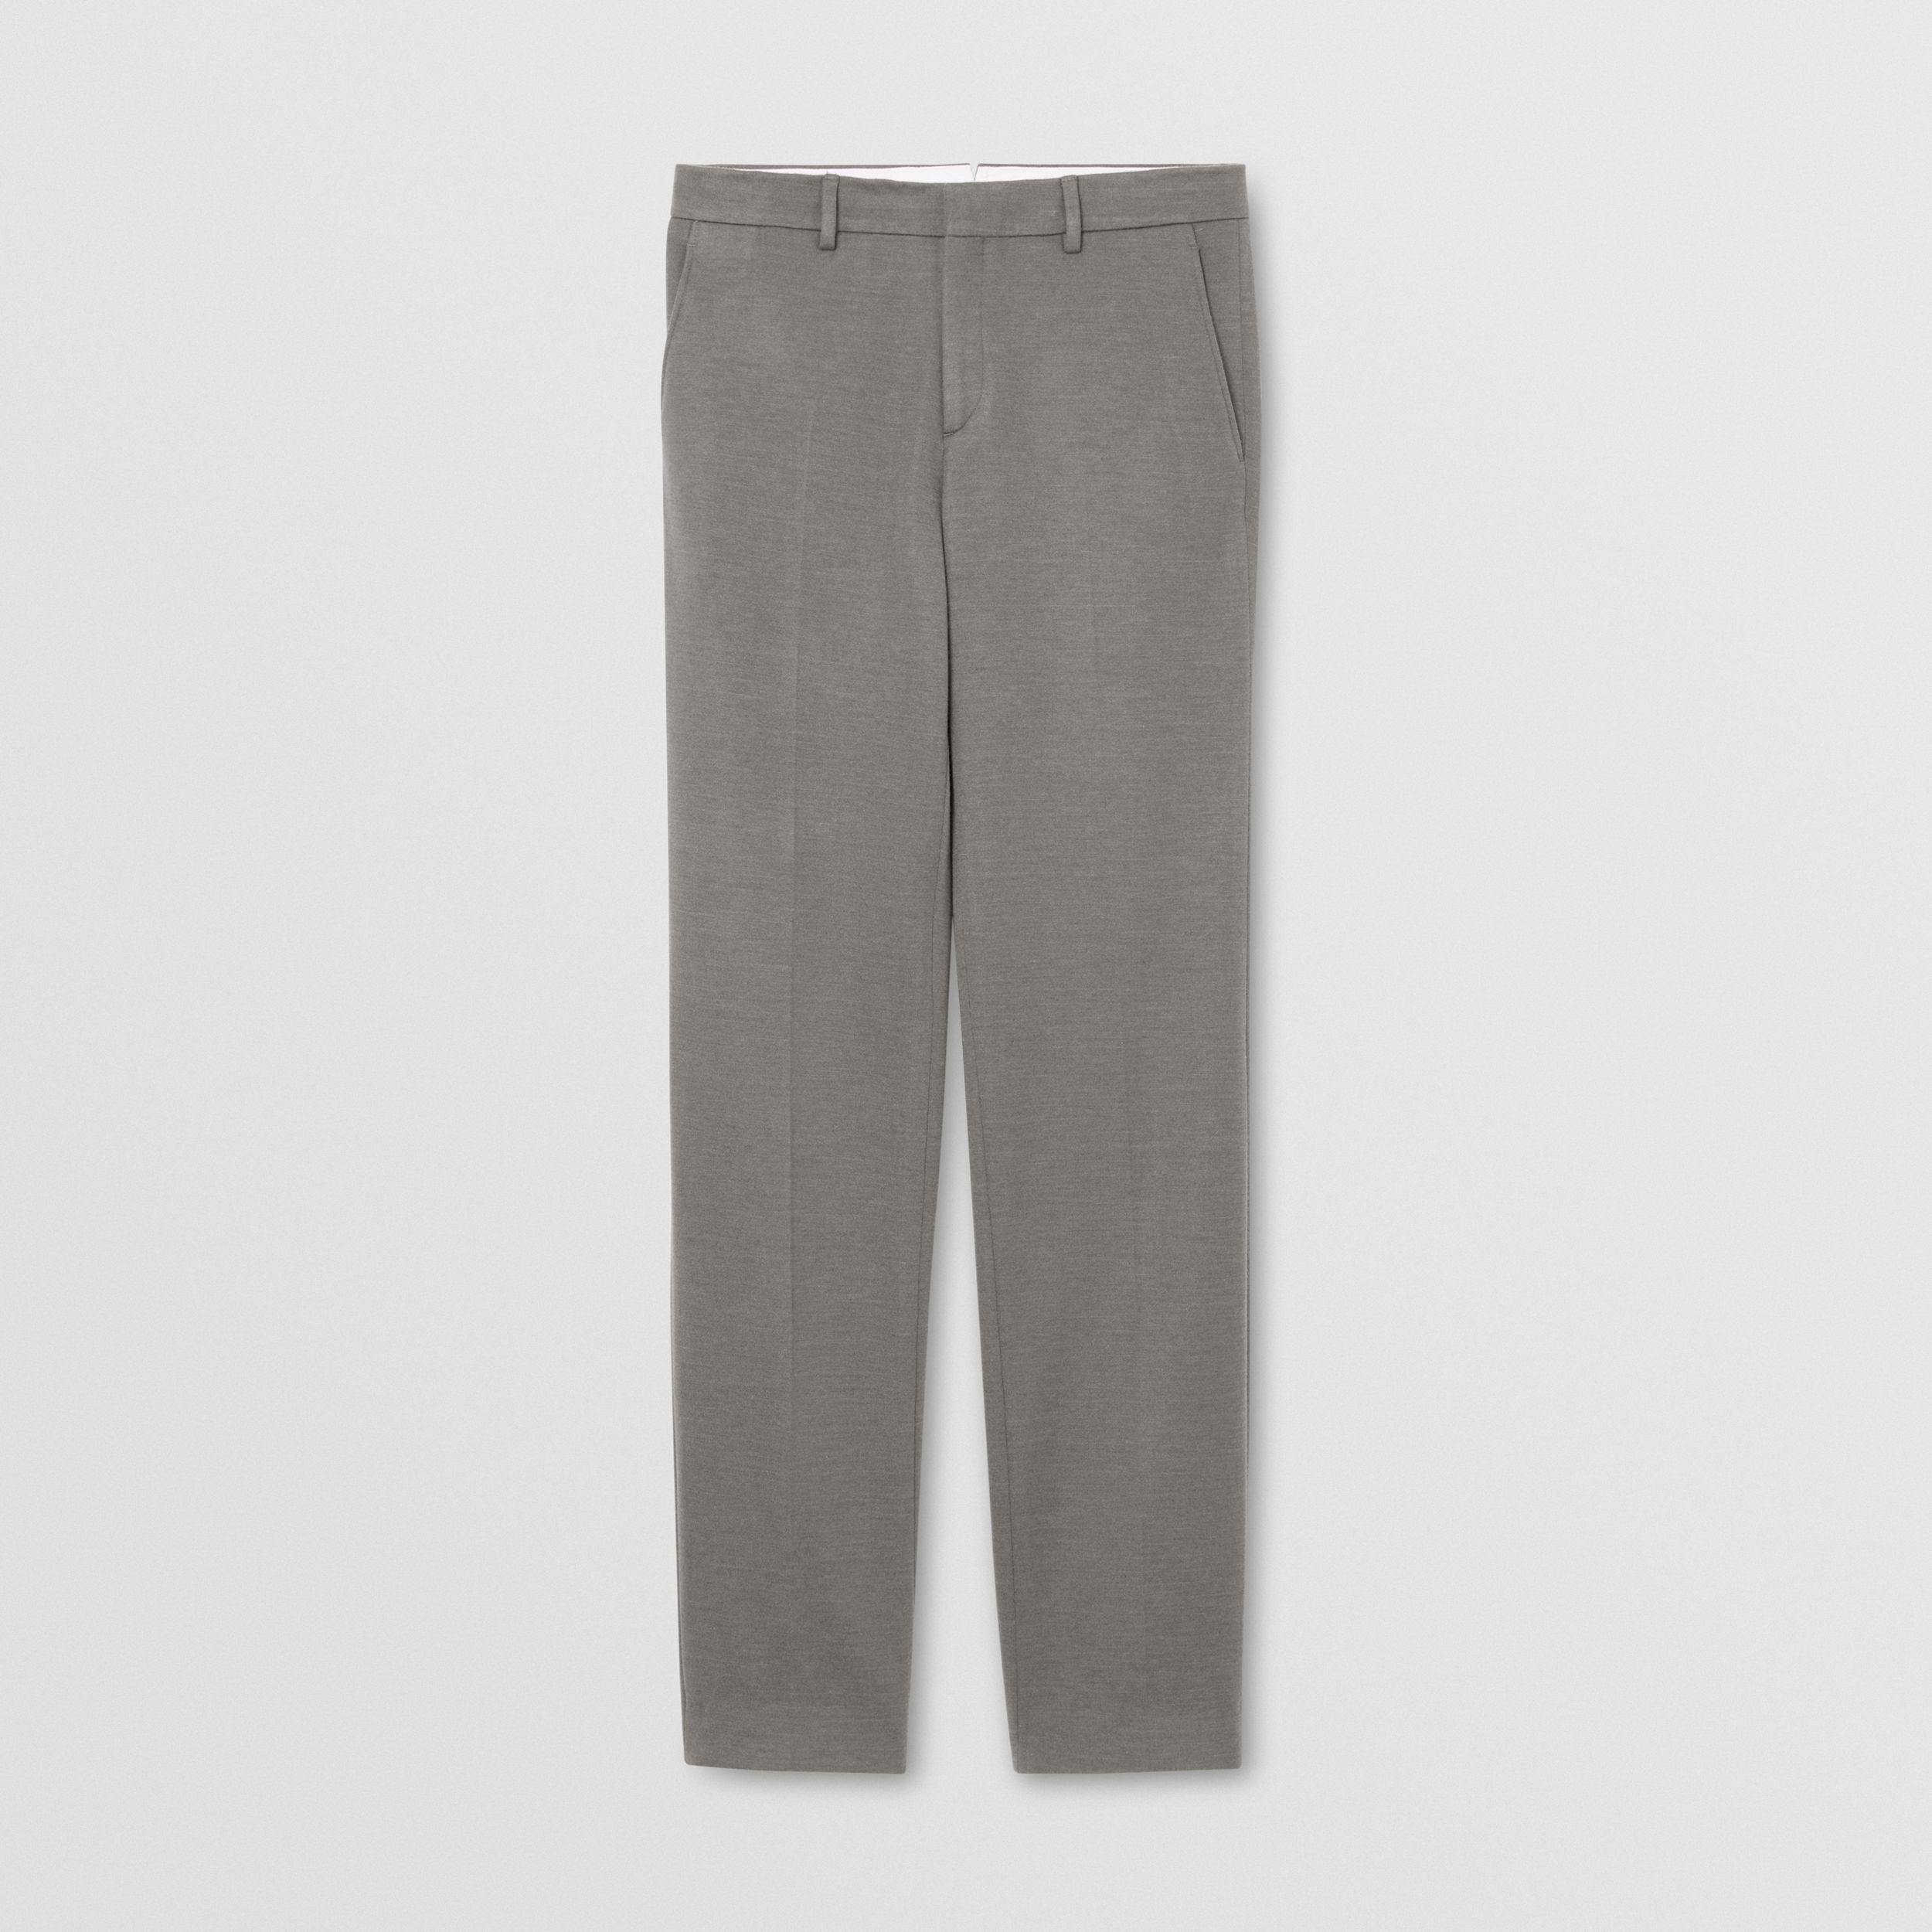 English Fit Cashmere Silk Jersey Tailored Trousers in Cloud Grey - Men | Burberry - 4